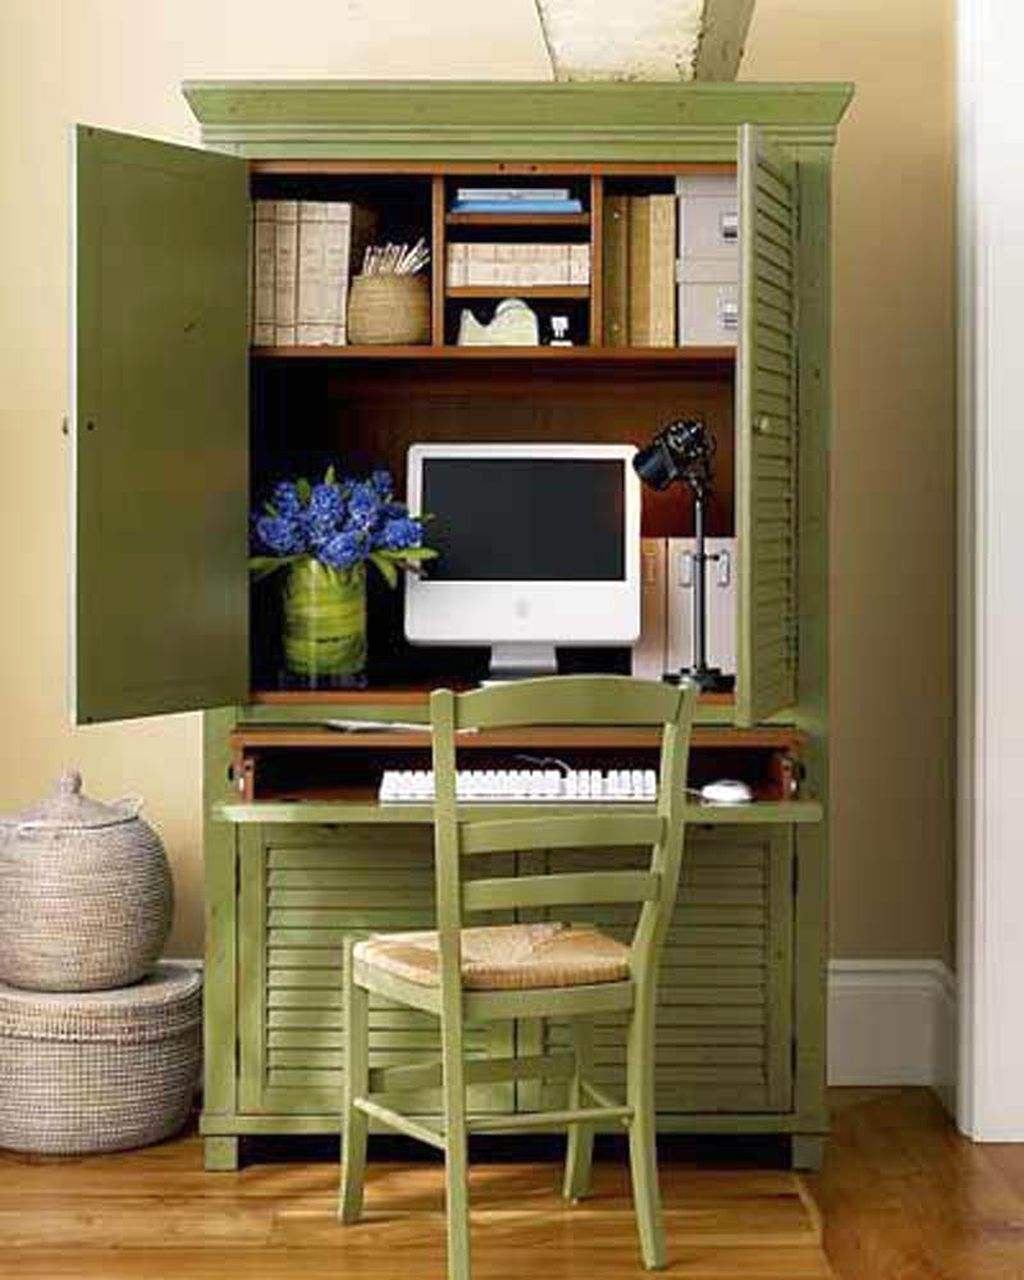 Home Office Design Ideas Basement: Green Cupboard Home Office Design Ideas For Small Spaces